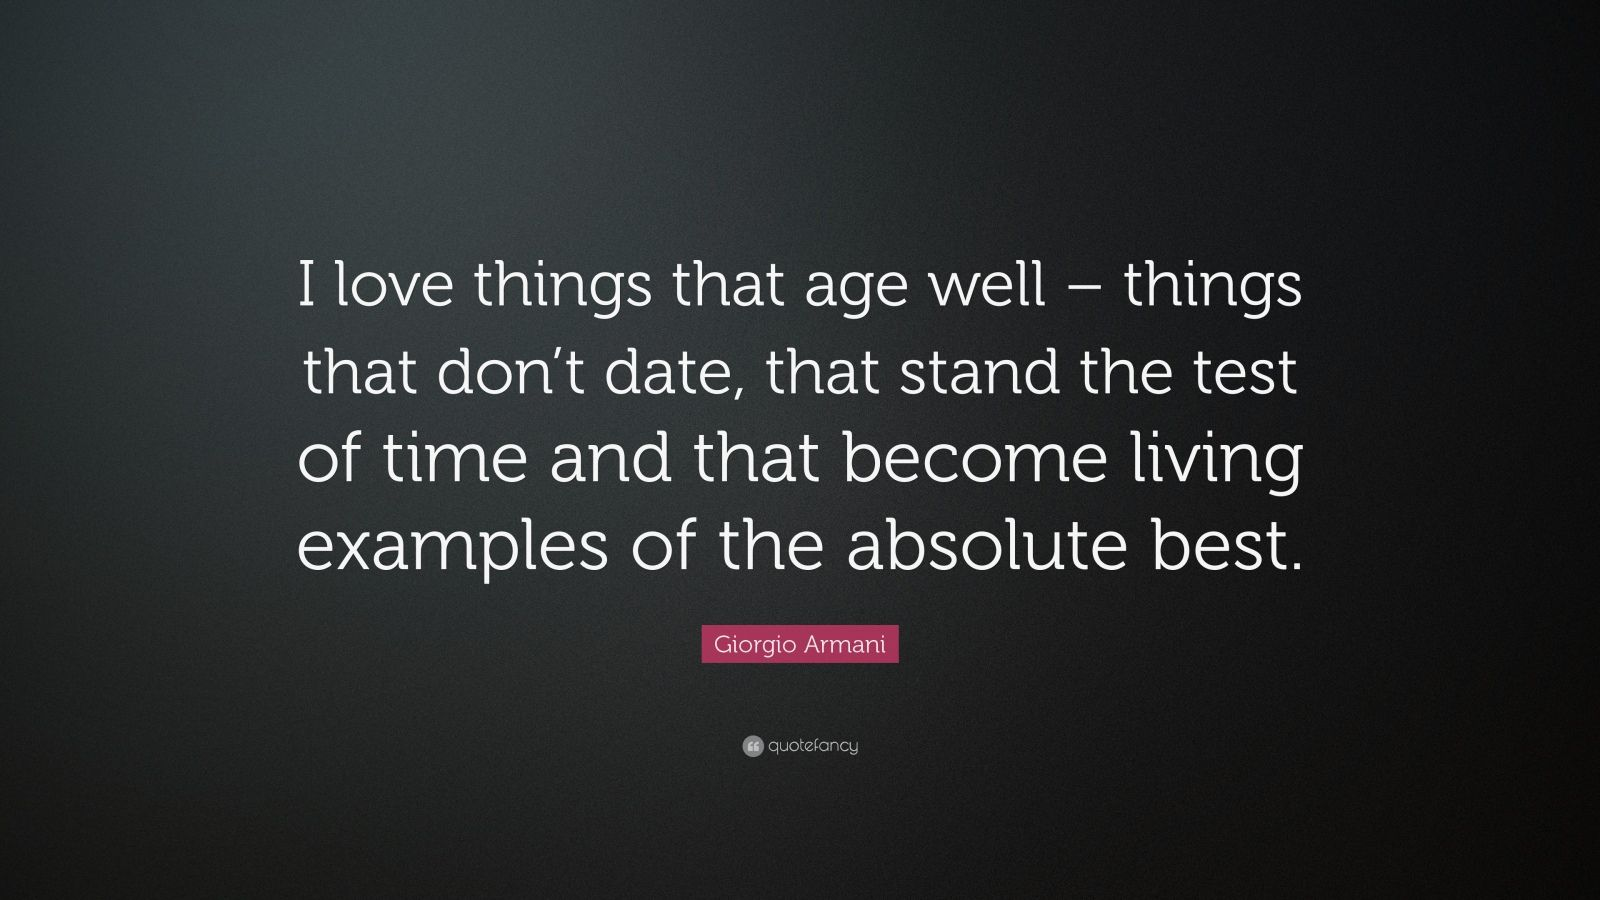 """Giorgio Armani Quote: """"I love things that age well – things that don't date, that stand the test of time and that become living examples of the absolute best."""""""